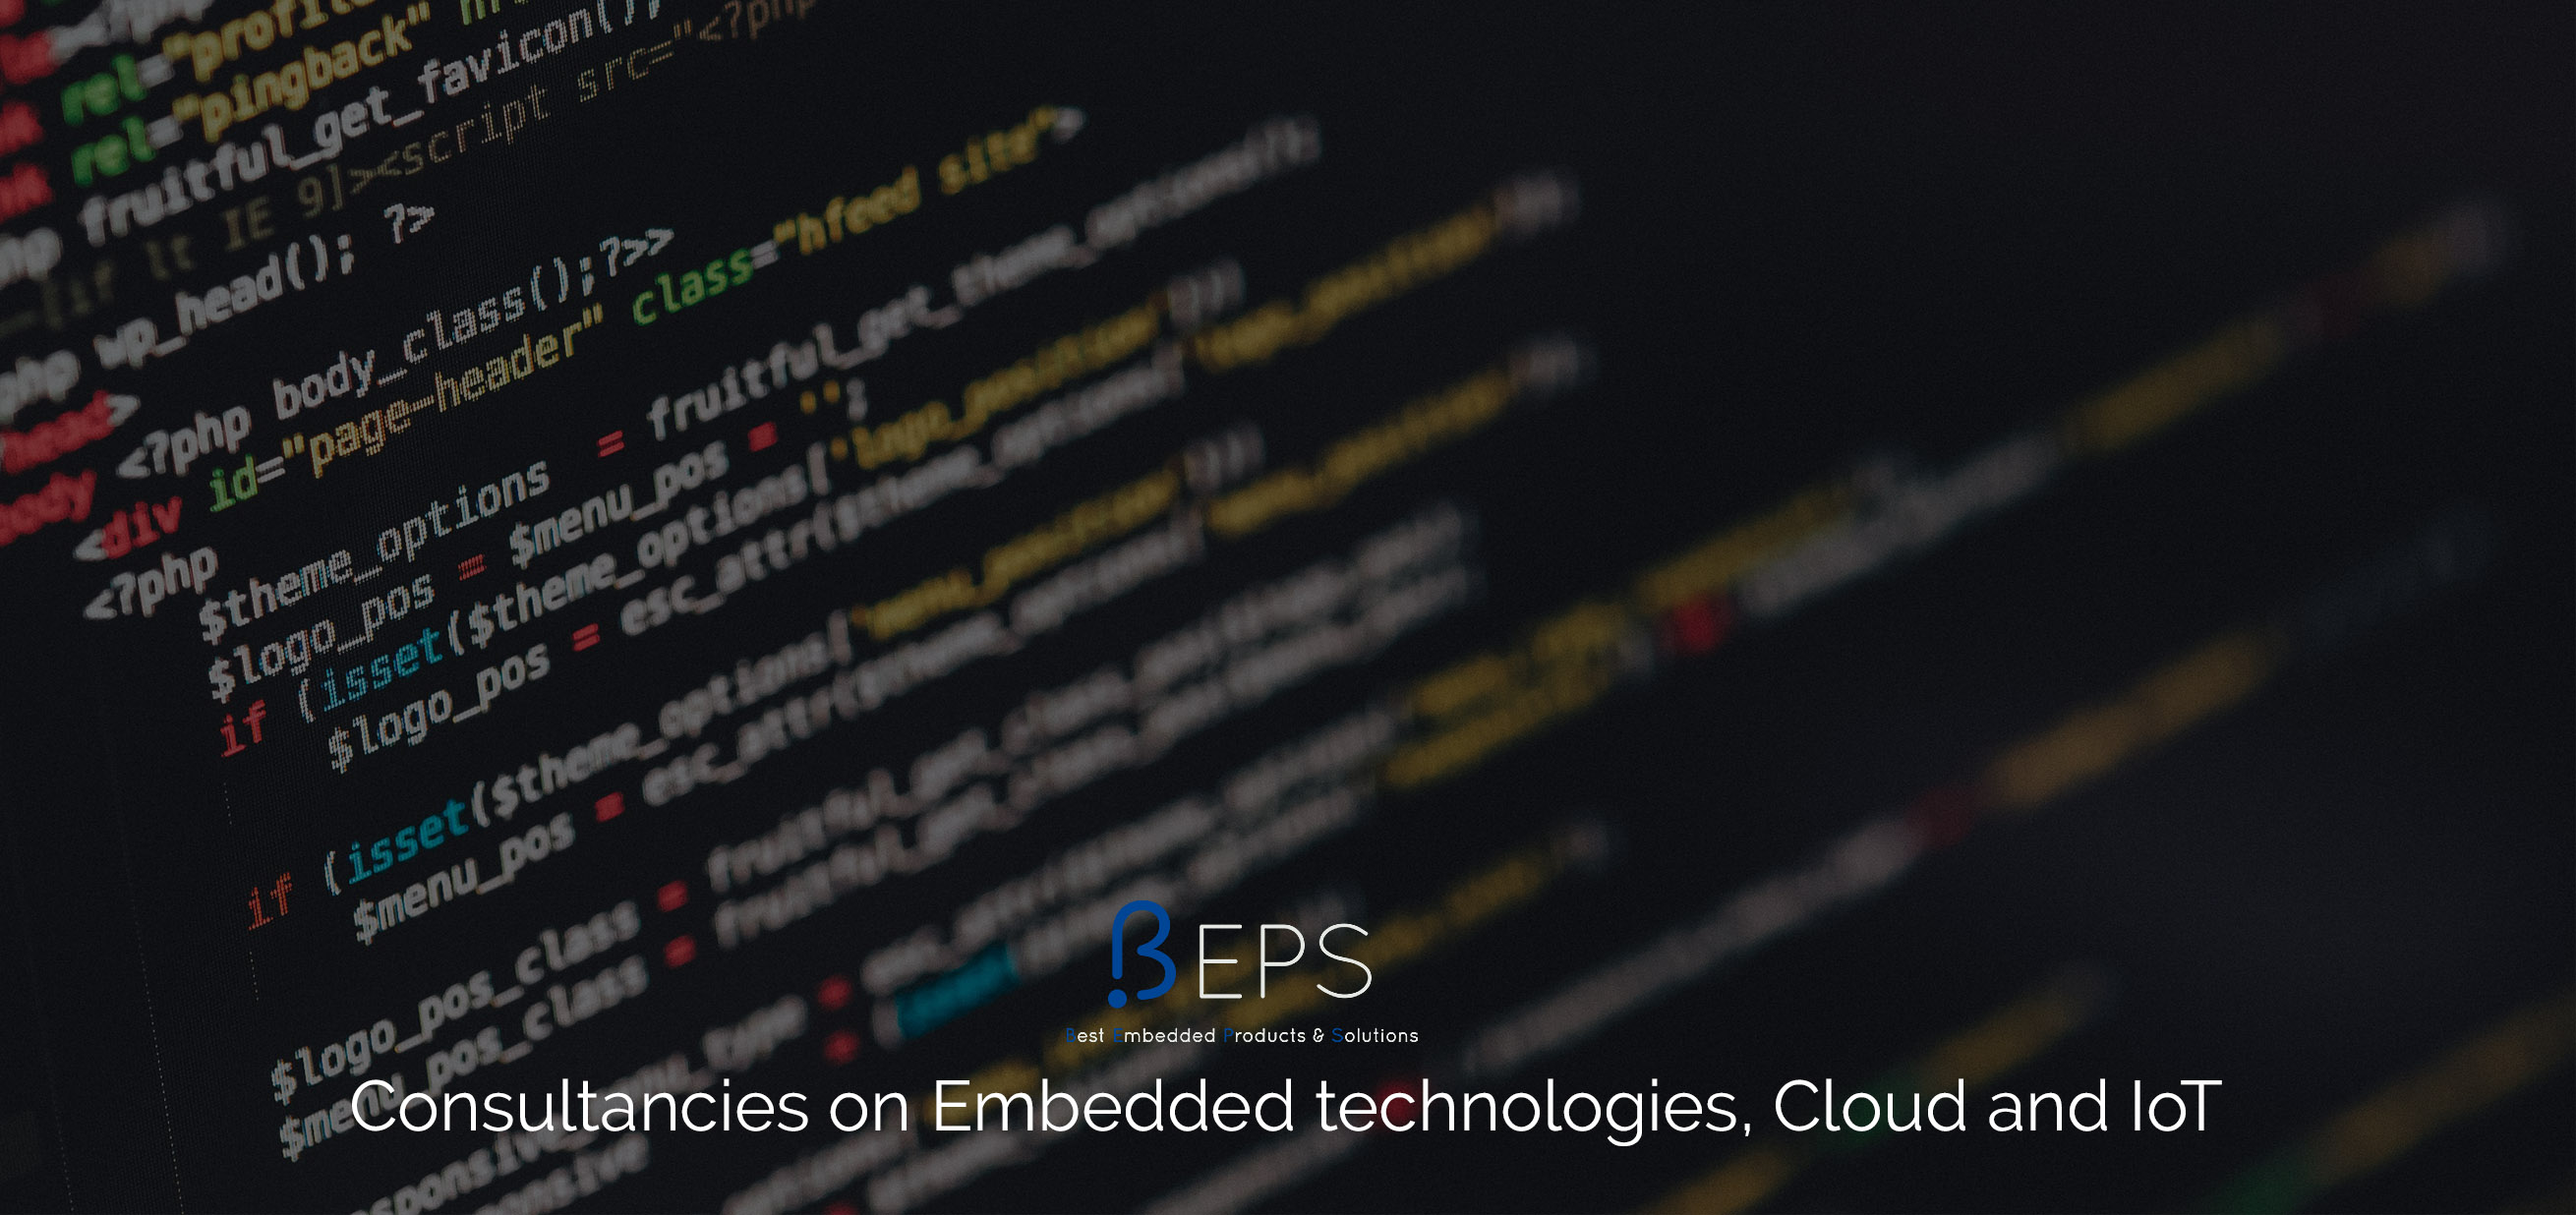 Beps Consultancies on Embedded, Cloud and IoT